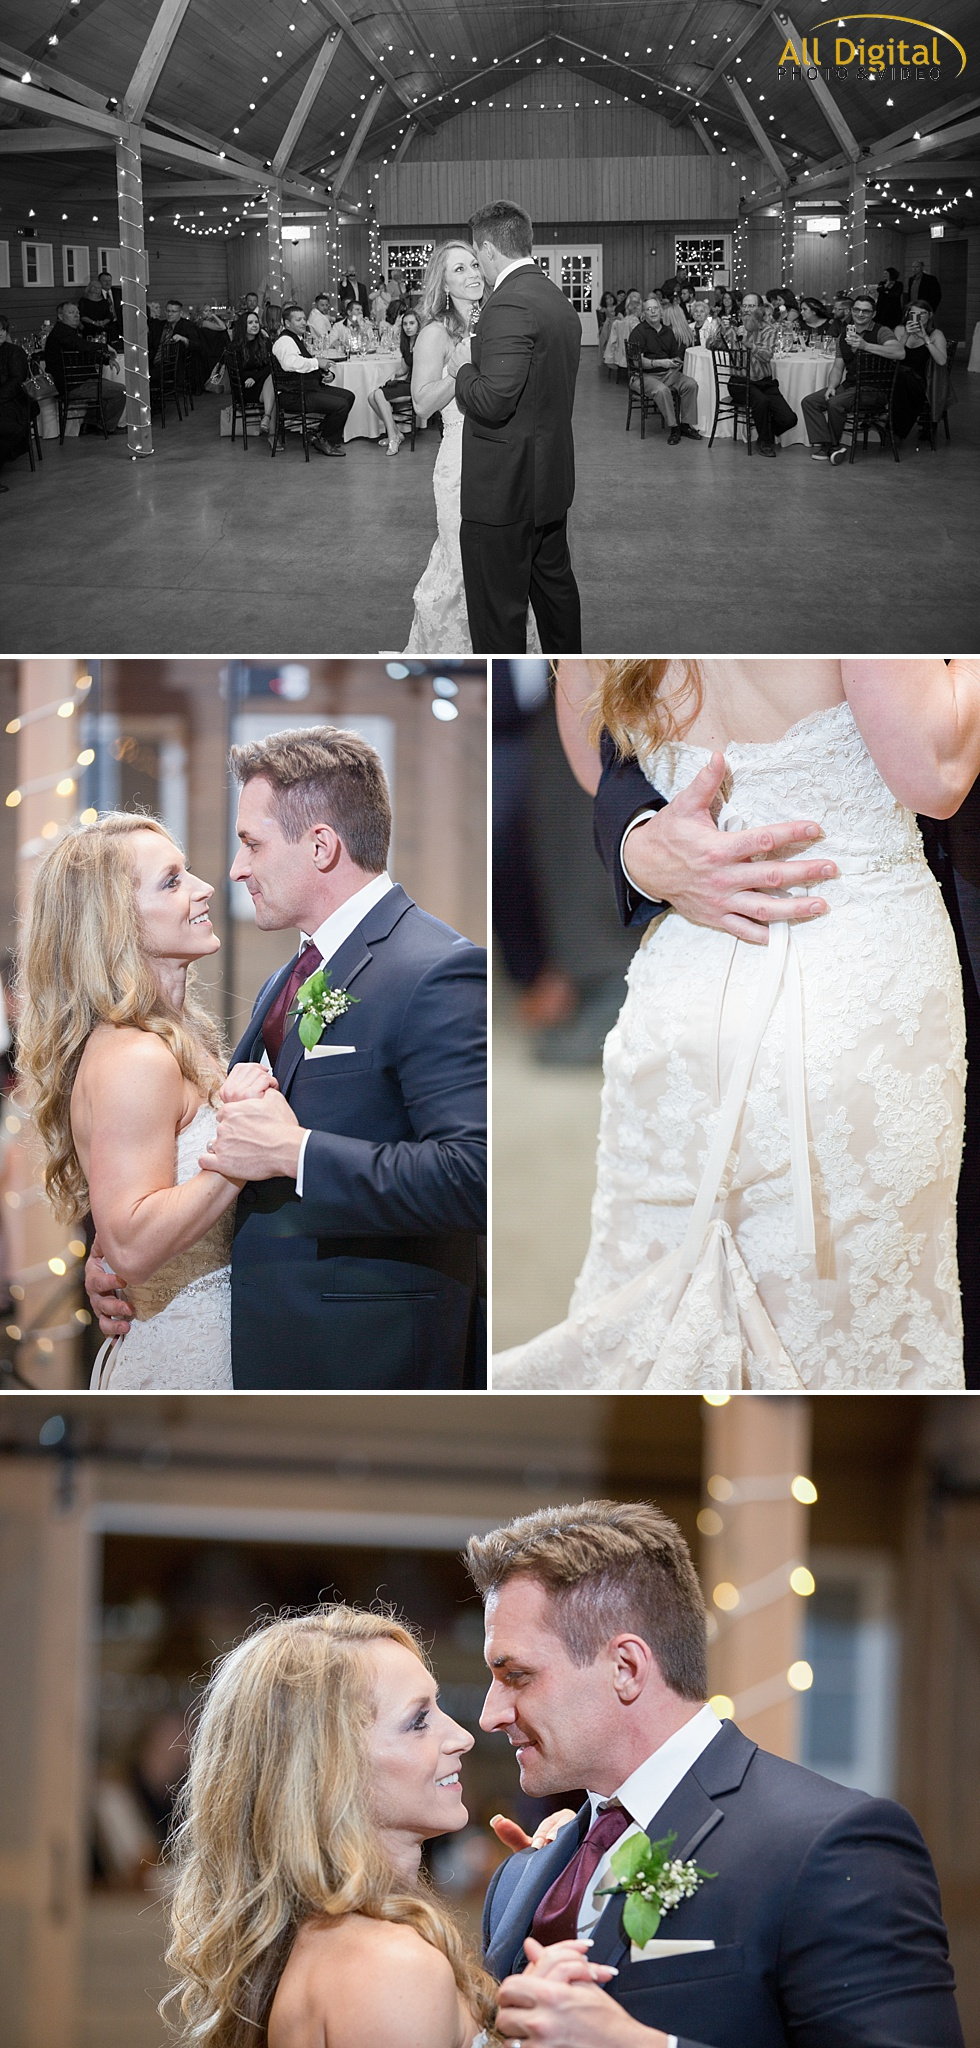 Tina & Nathan's First Dance at the Barn at Raccoon Creek